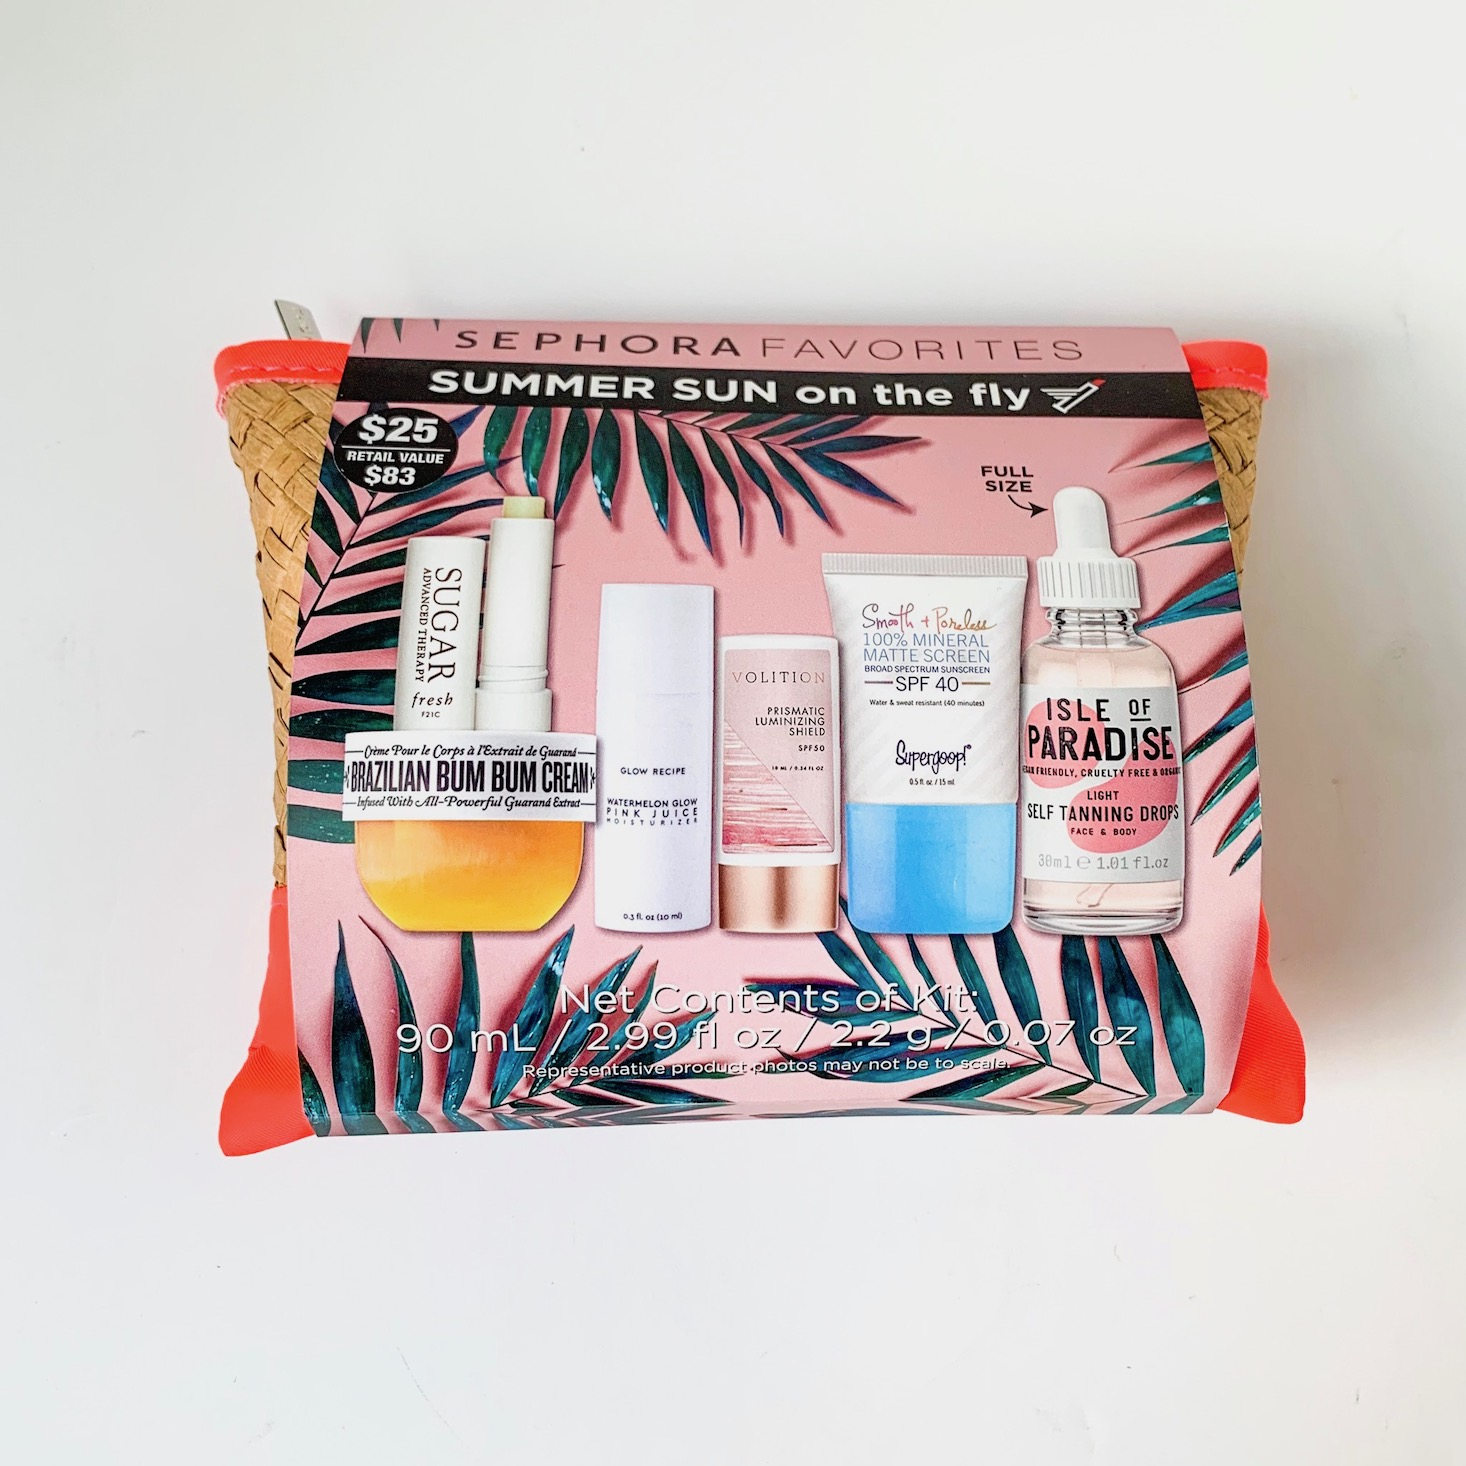 Sephora Sephora Favorites: Summer Sun On The Fly Review – April 2019